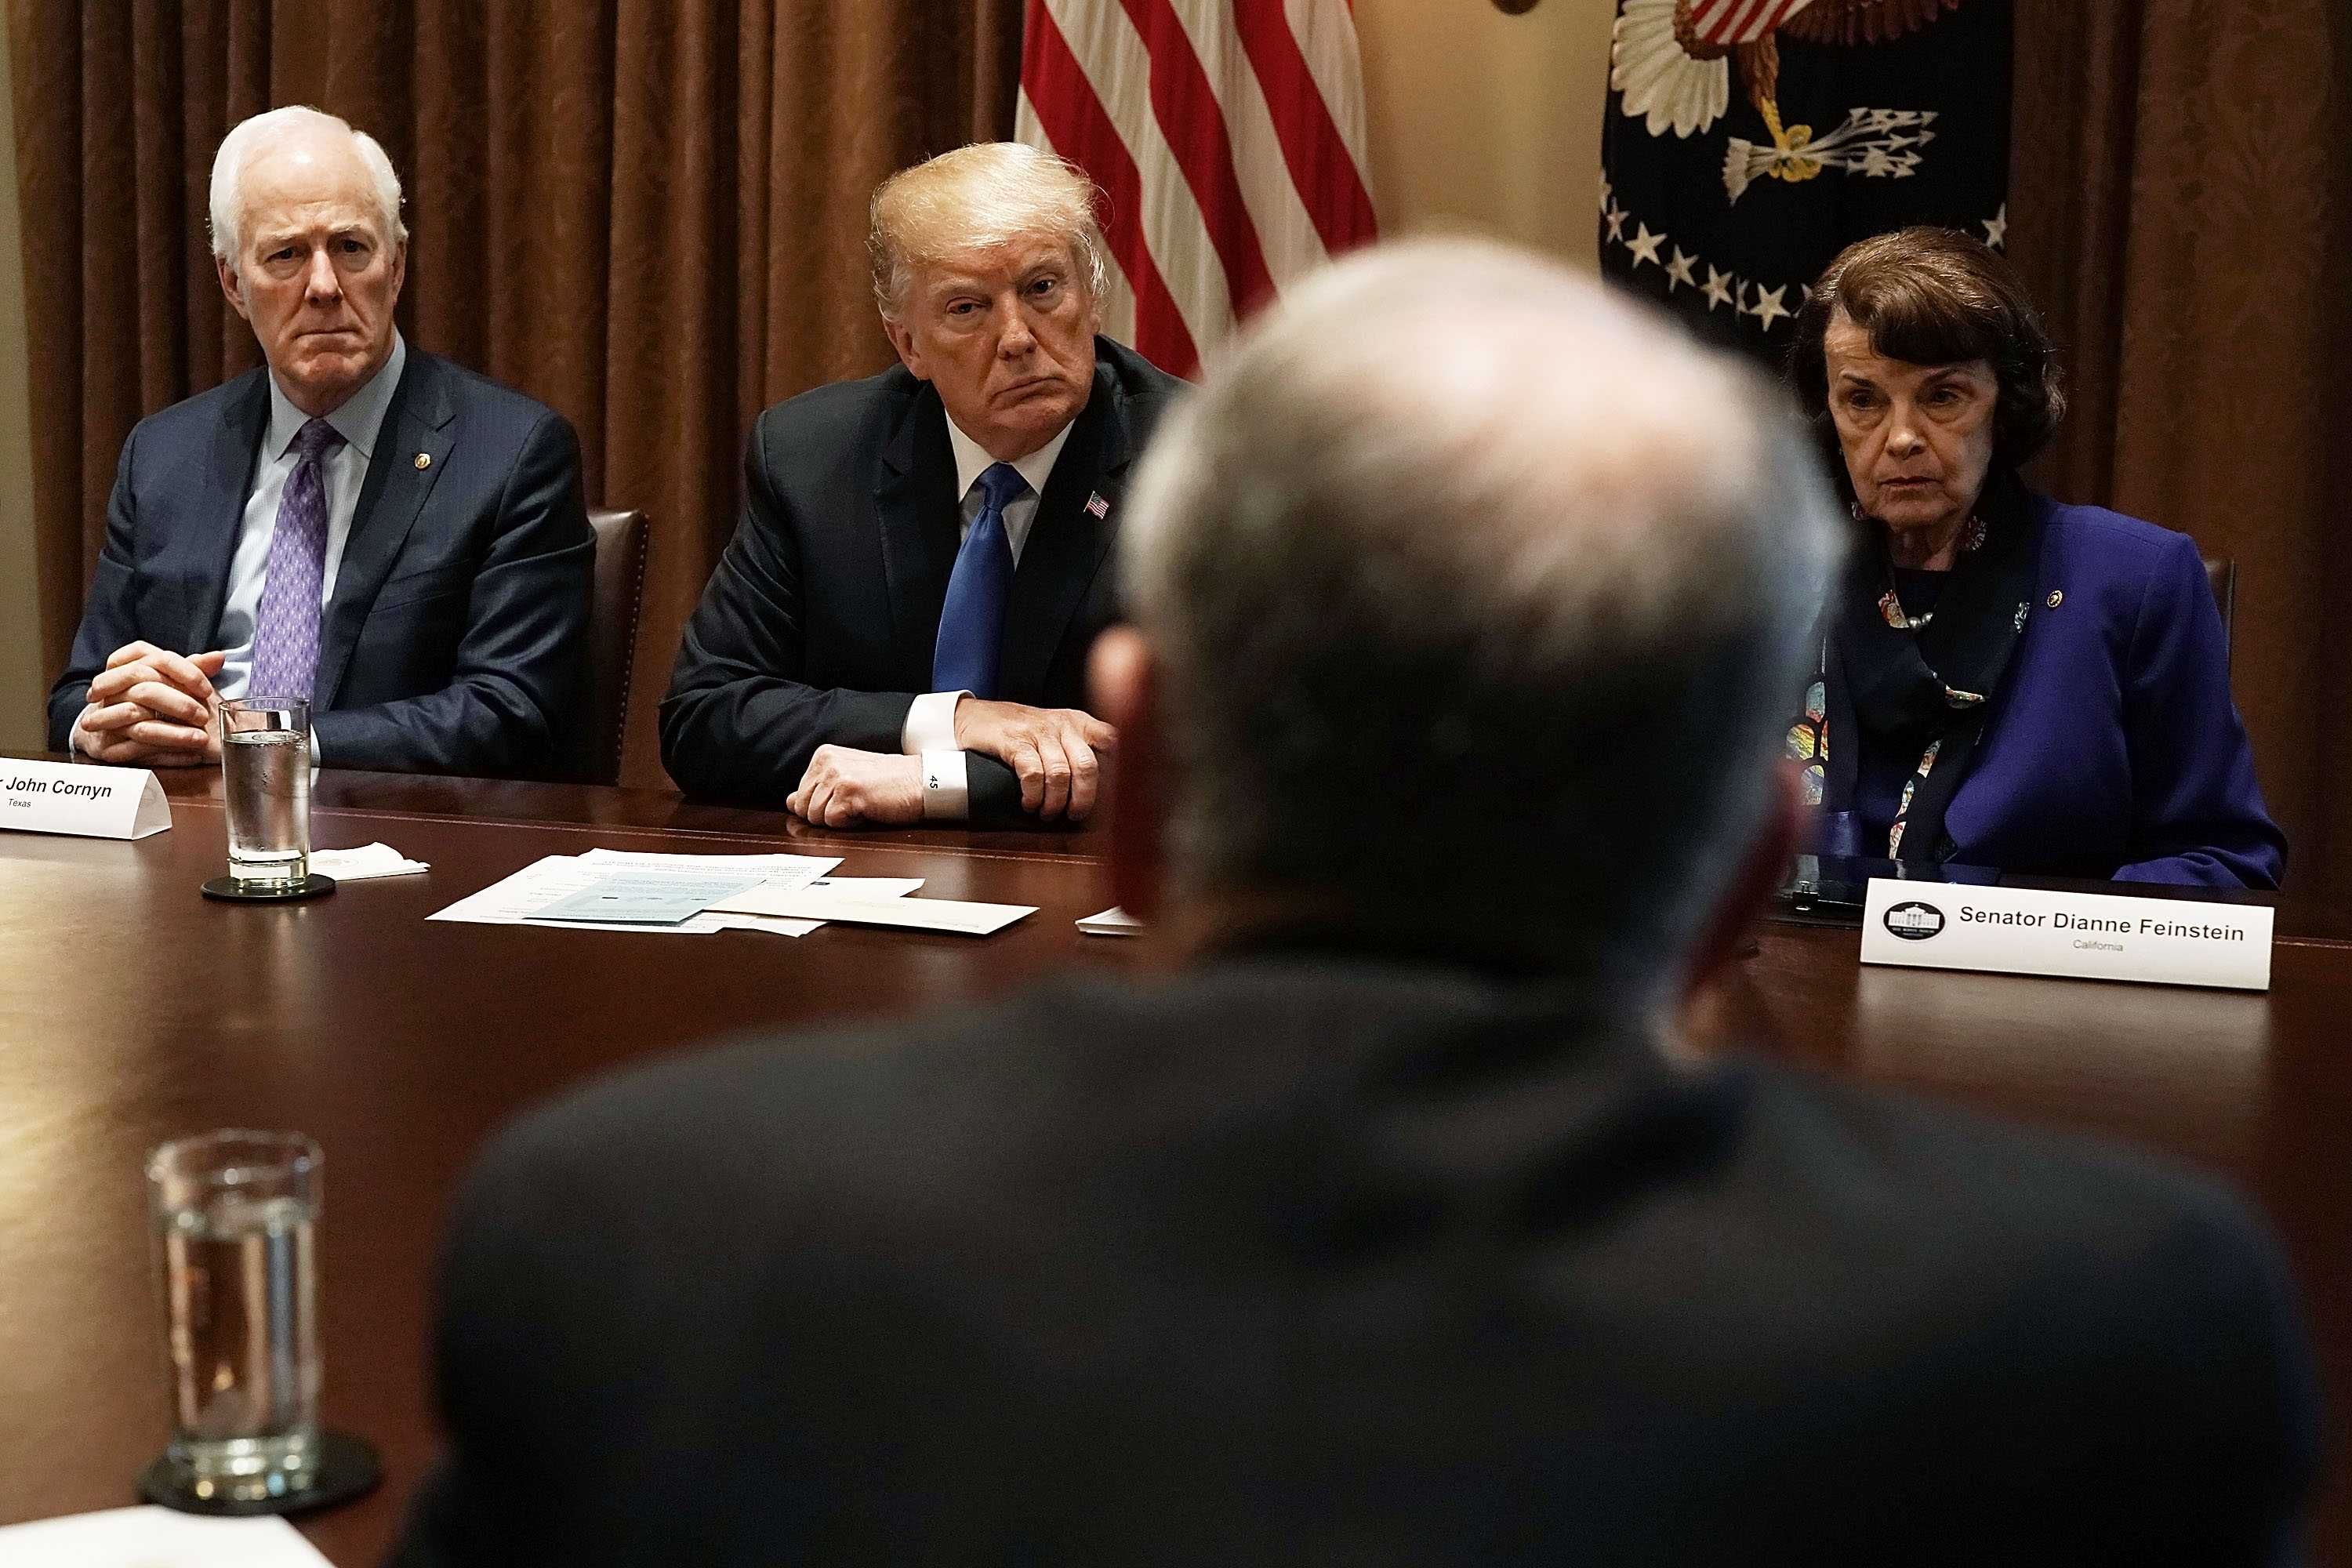 U.S. President Donald Trump, Senate Majority Whip Sen. John Cornyn  and Sen. Dianne Feinstein  listen during a meeting with bipartisan members of the Congress at the Cabinet Room of the White House